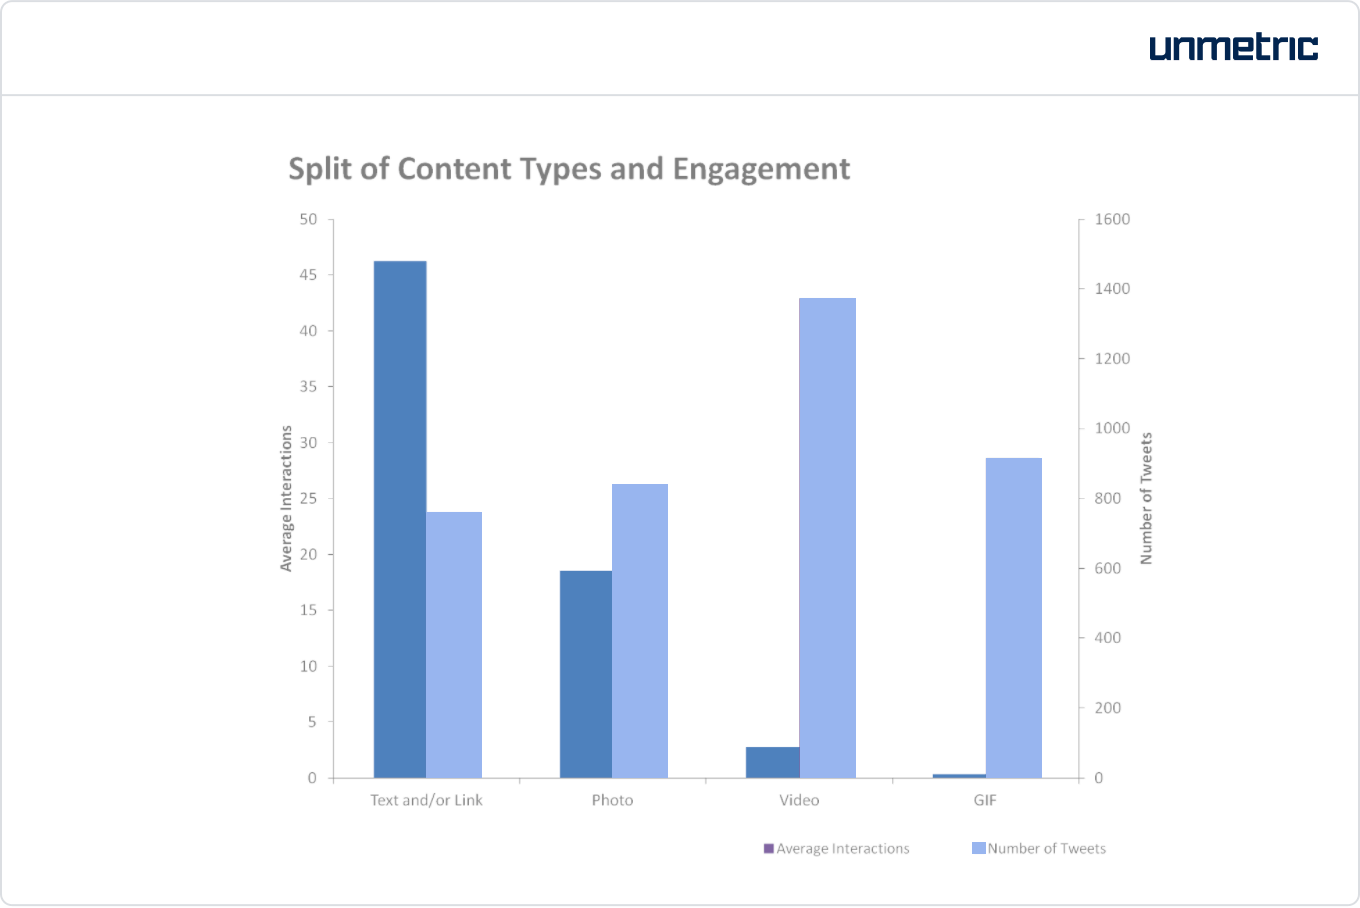 Volume and engagement received by photos, videos, text/links and GIFs